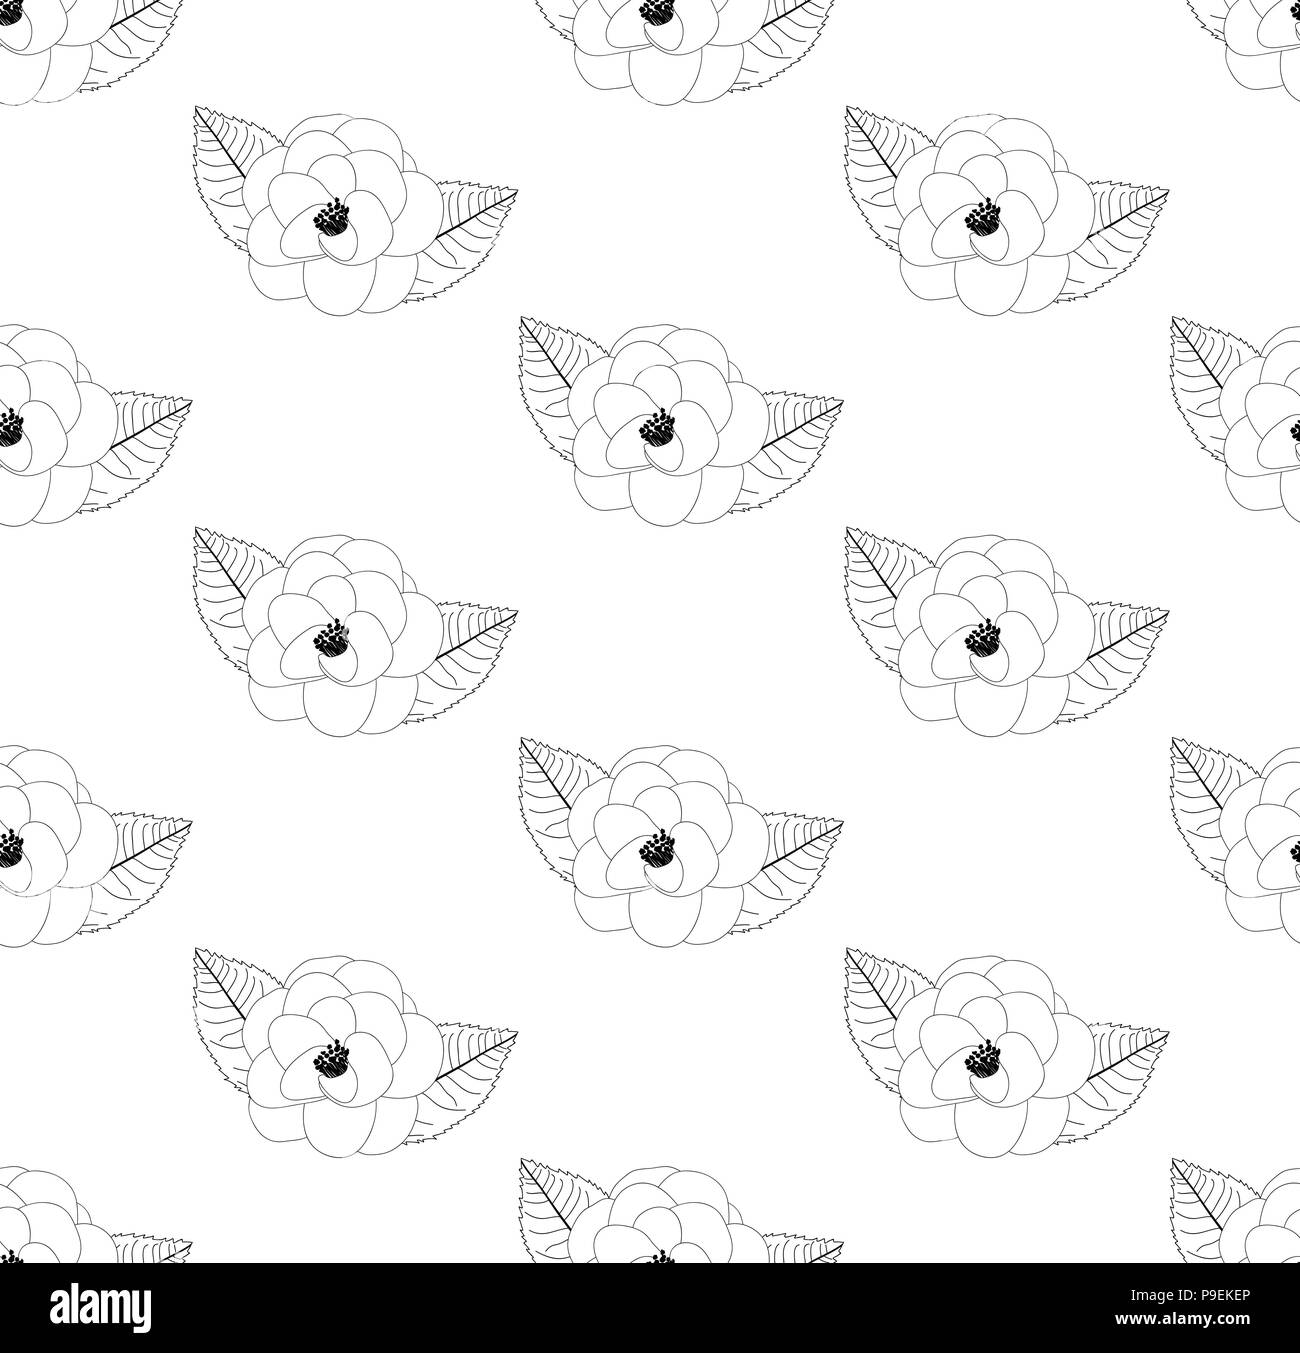 Camellia Flower Outline On White Background Vector Illustration